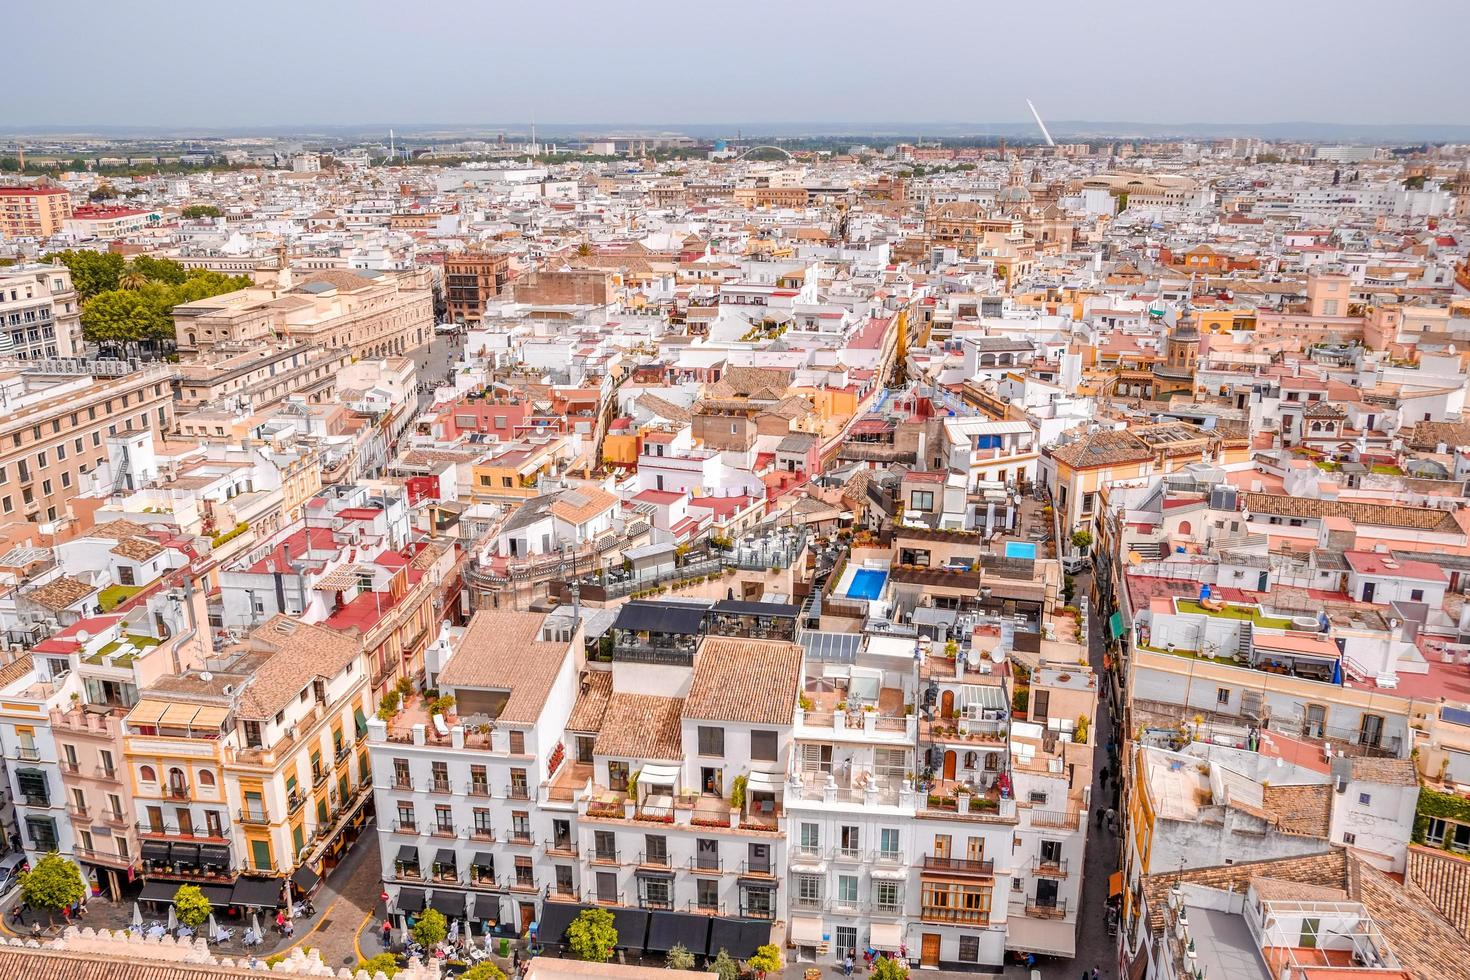 Cityscape view of Seville from above photo